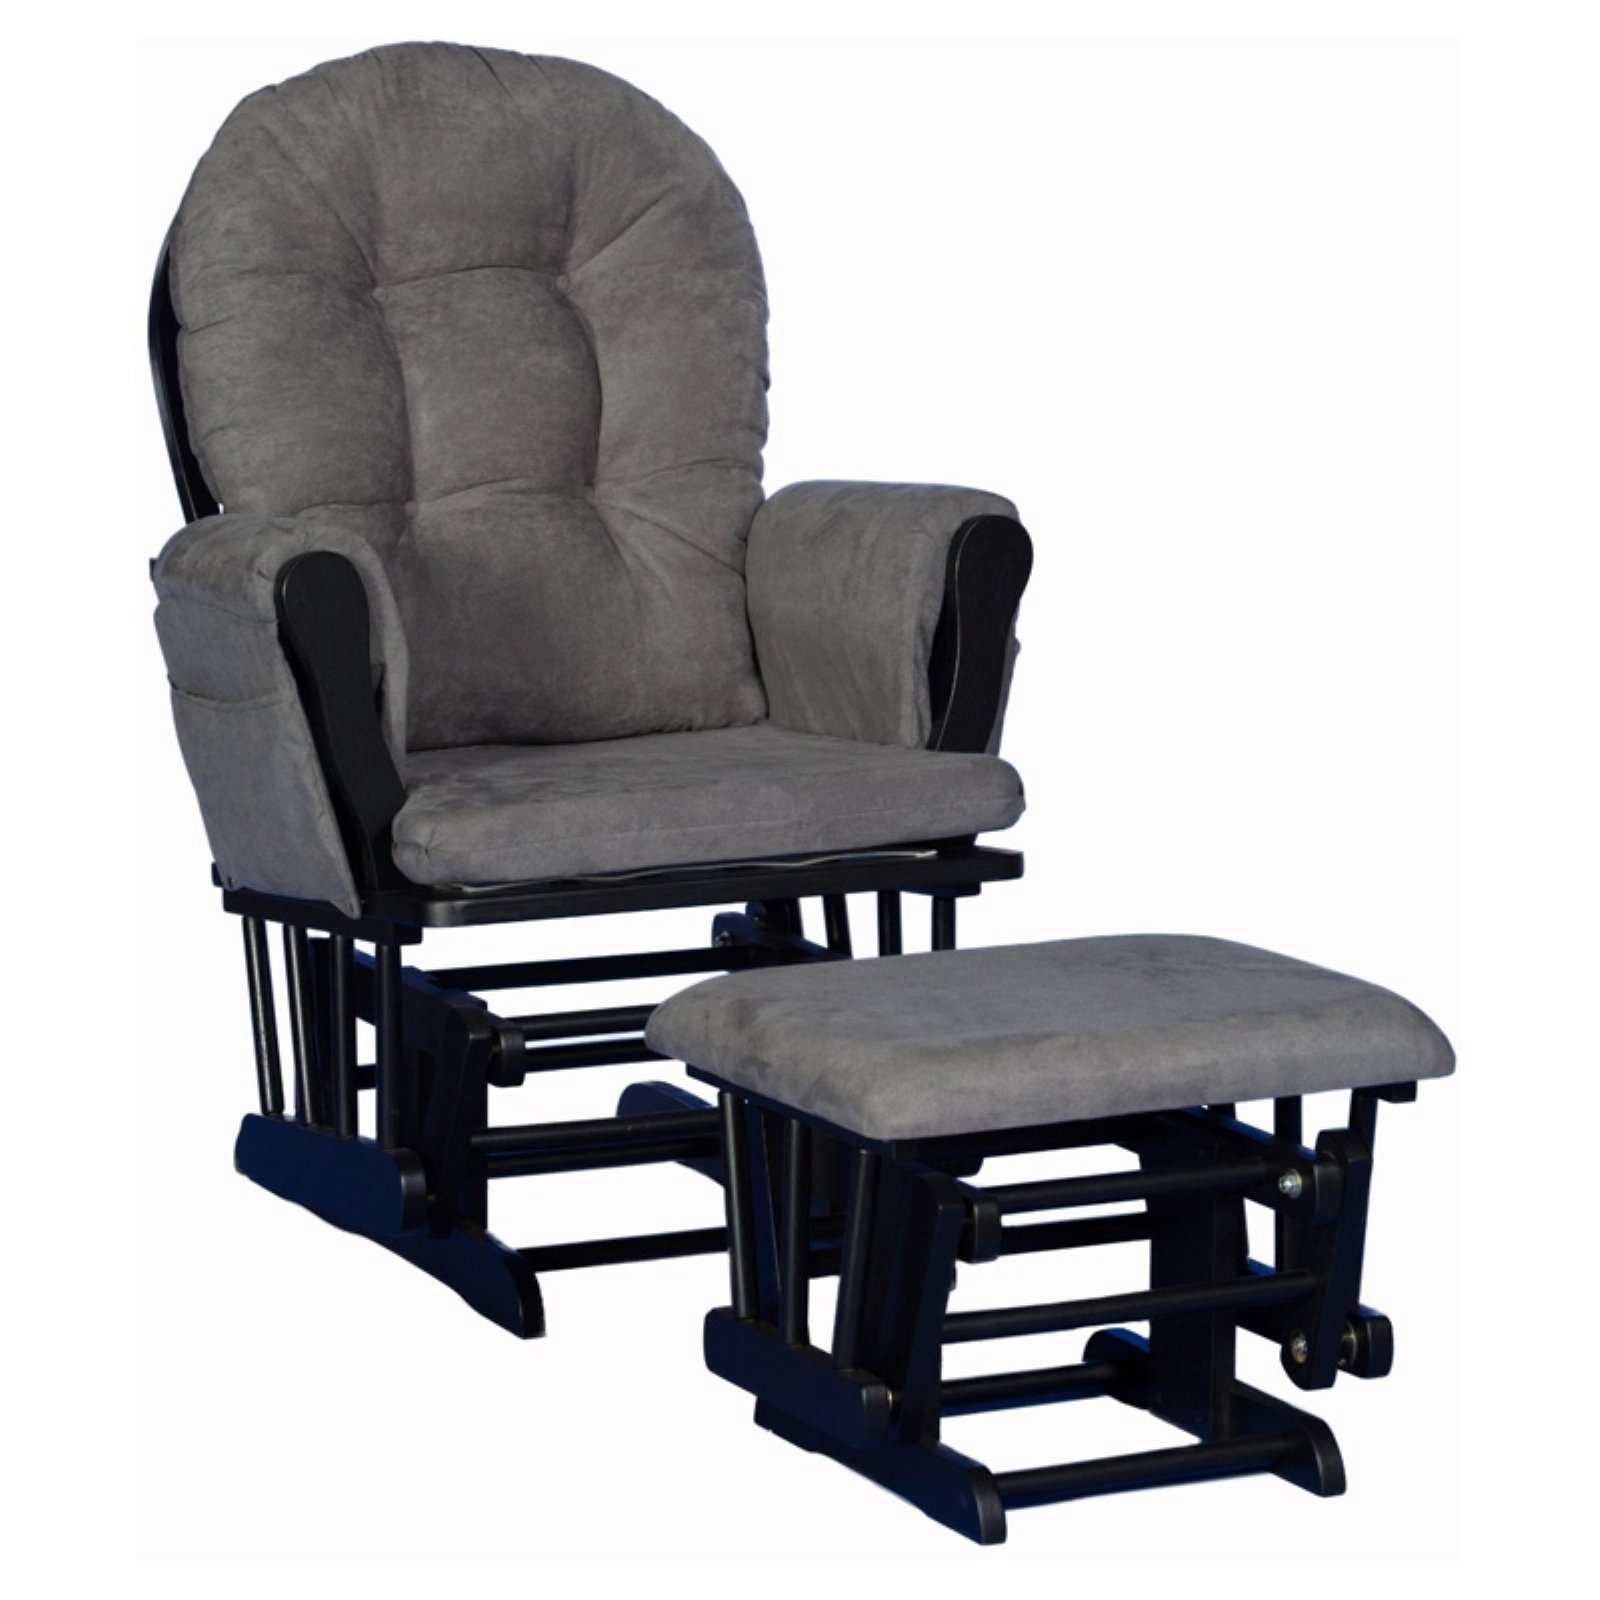 Storkcraft Hoop Glider and Ottoman Black with Gray Cushions